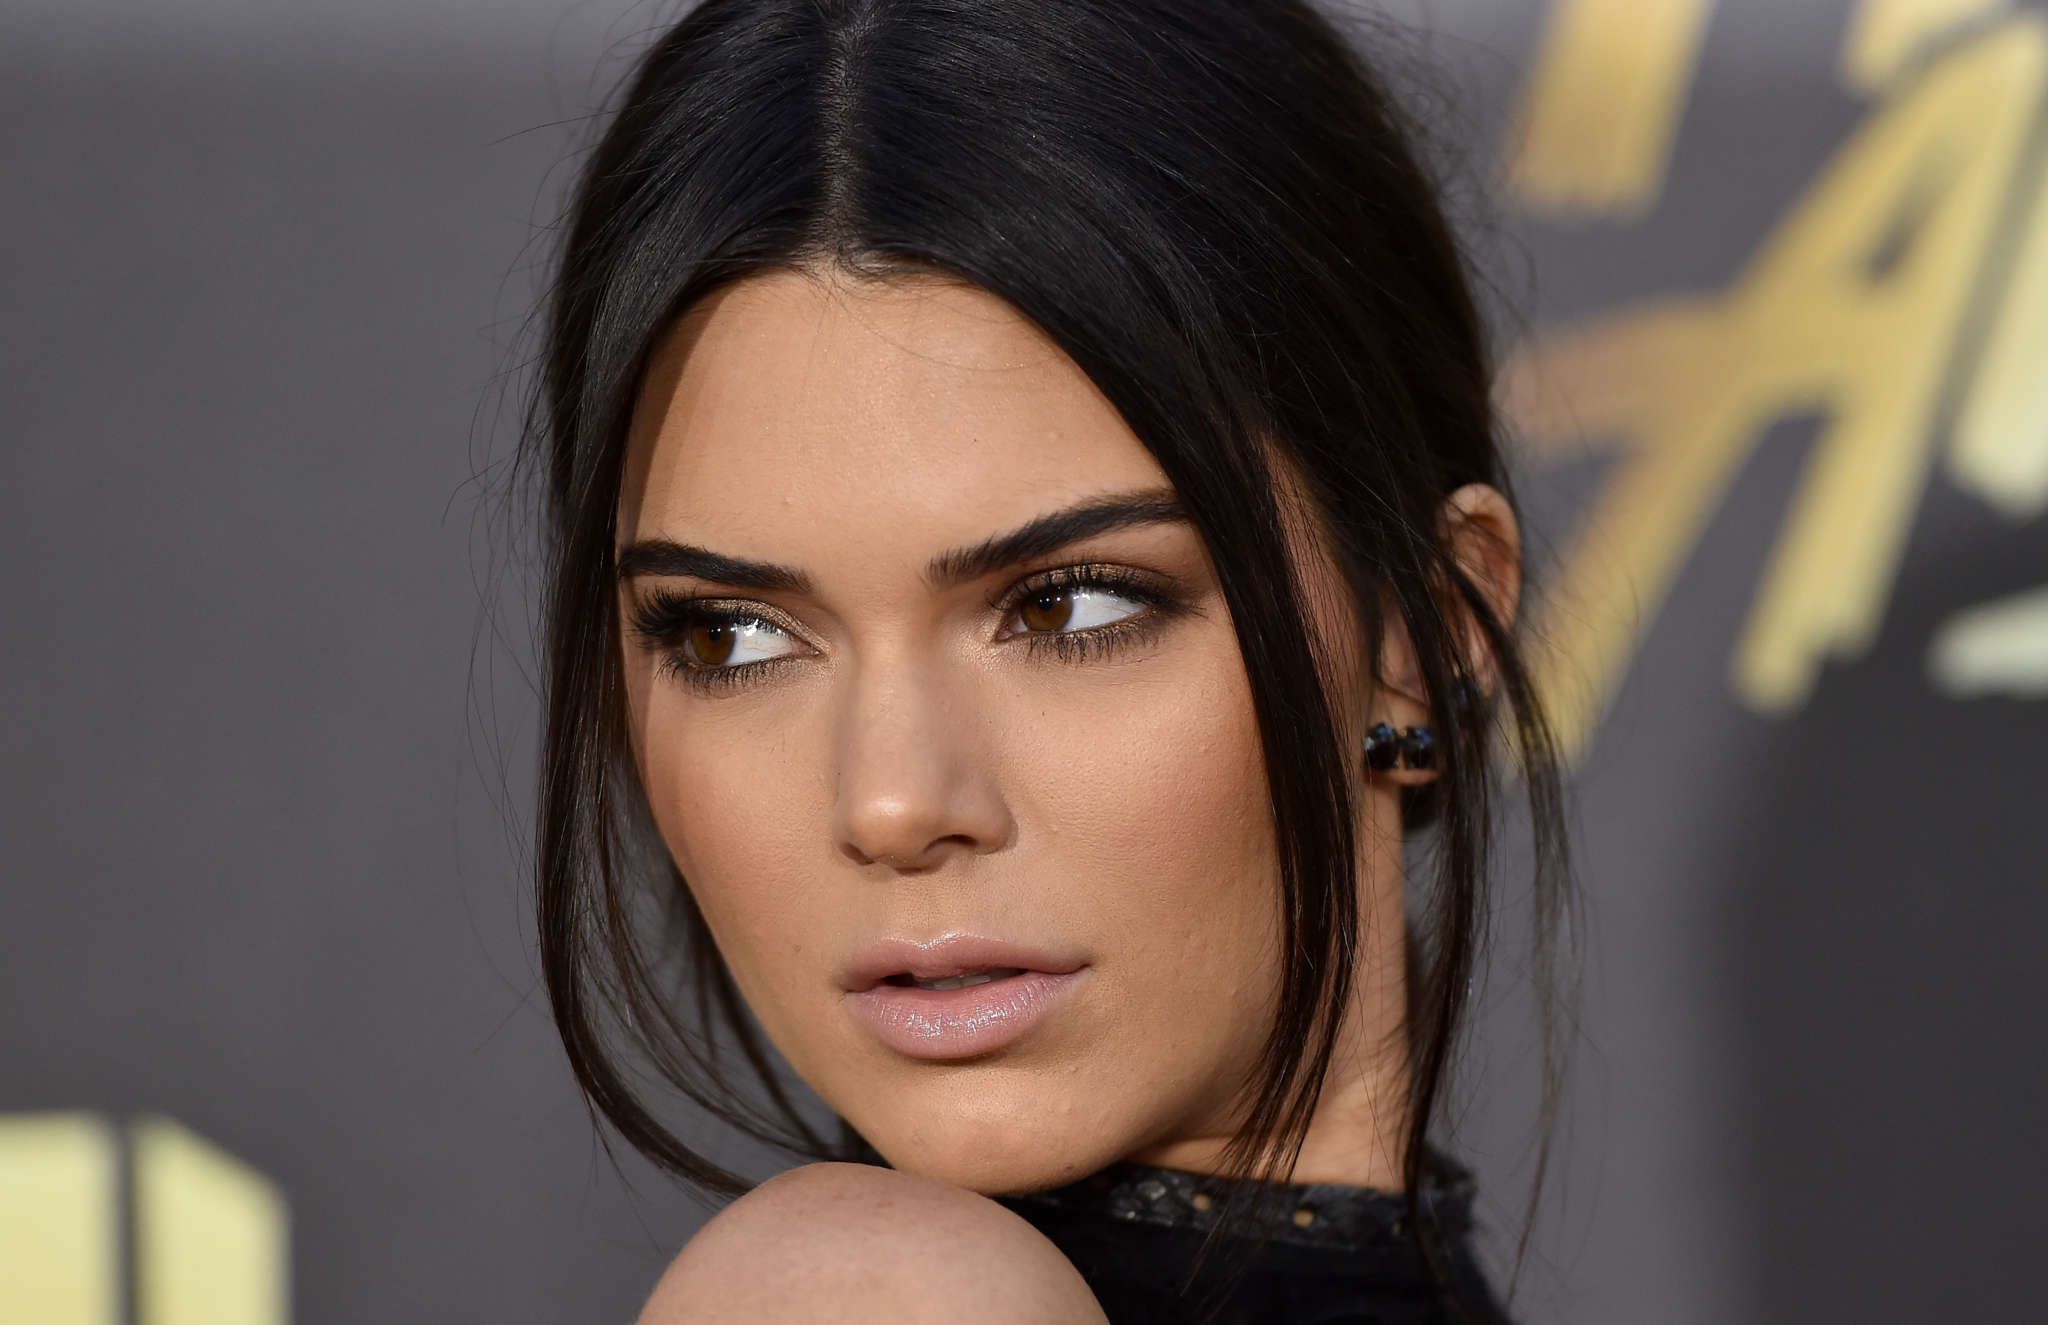 """kuwk-kendall-jenner-also-slammed-for-washing-her-face-in-under-10-seconds-after-the-kylie-skin-backlash"""